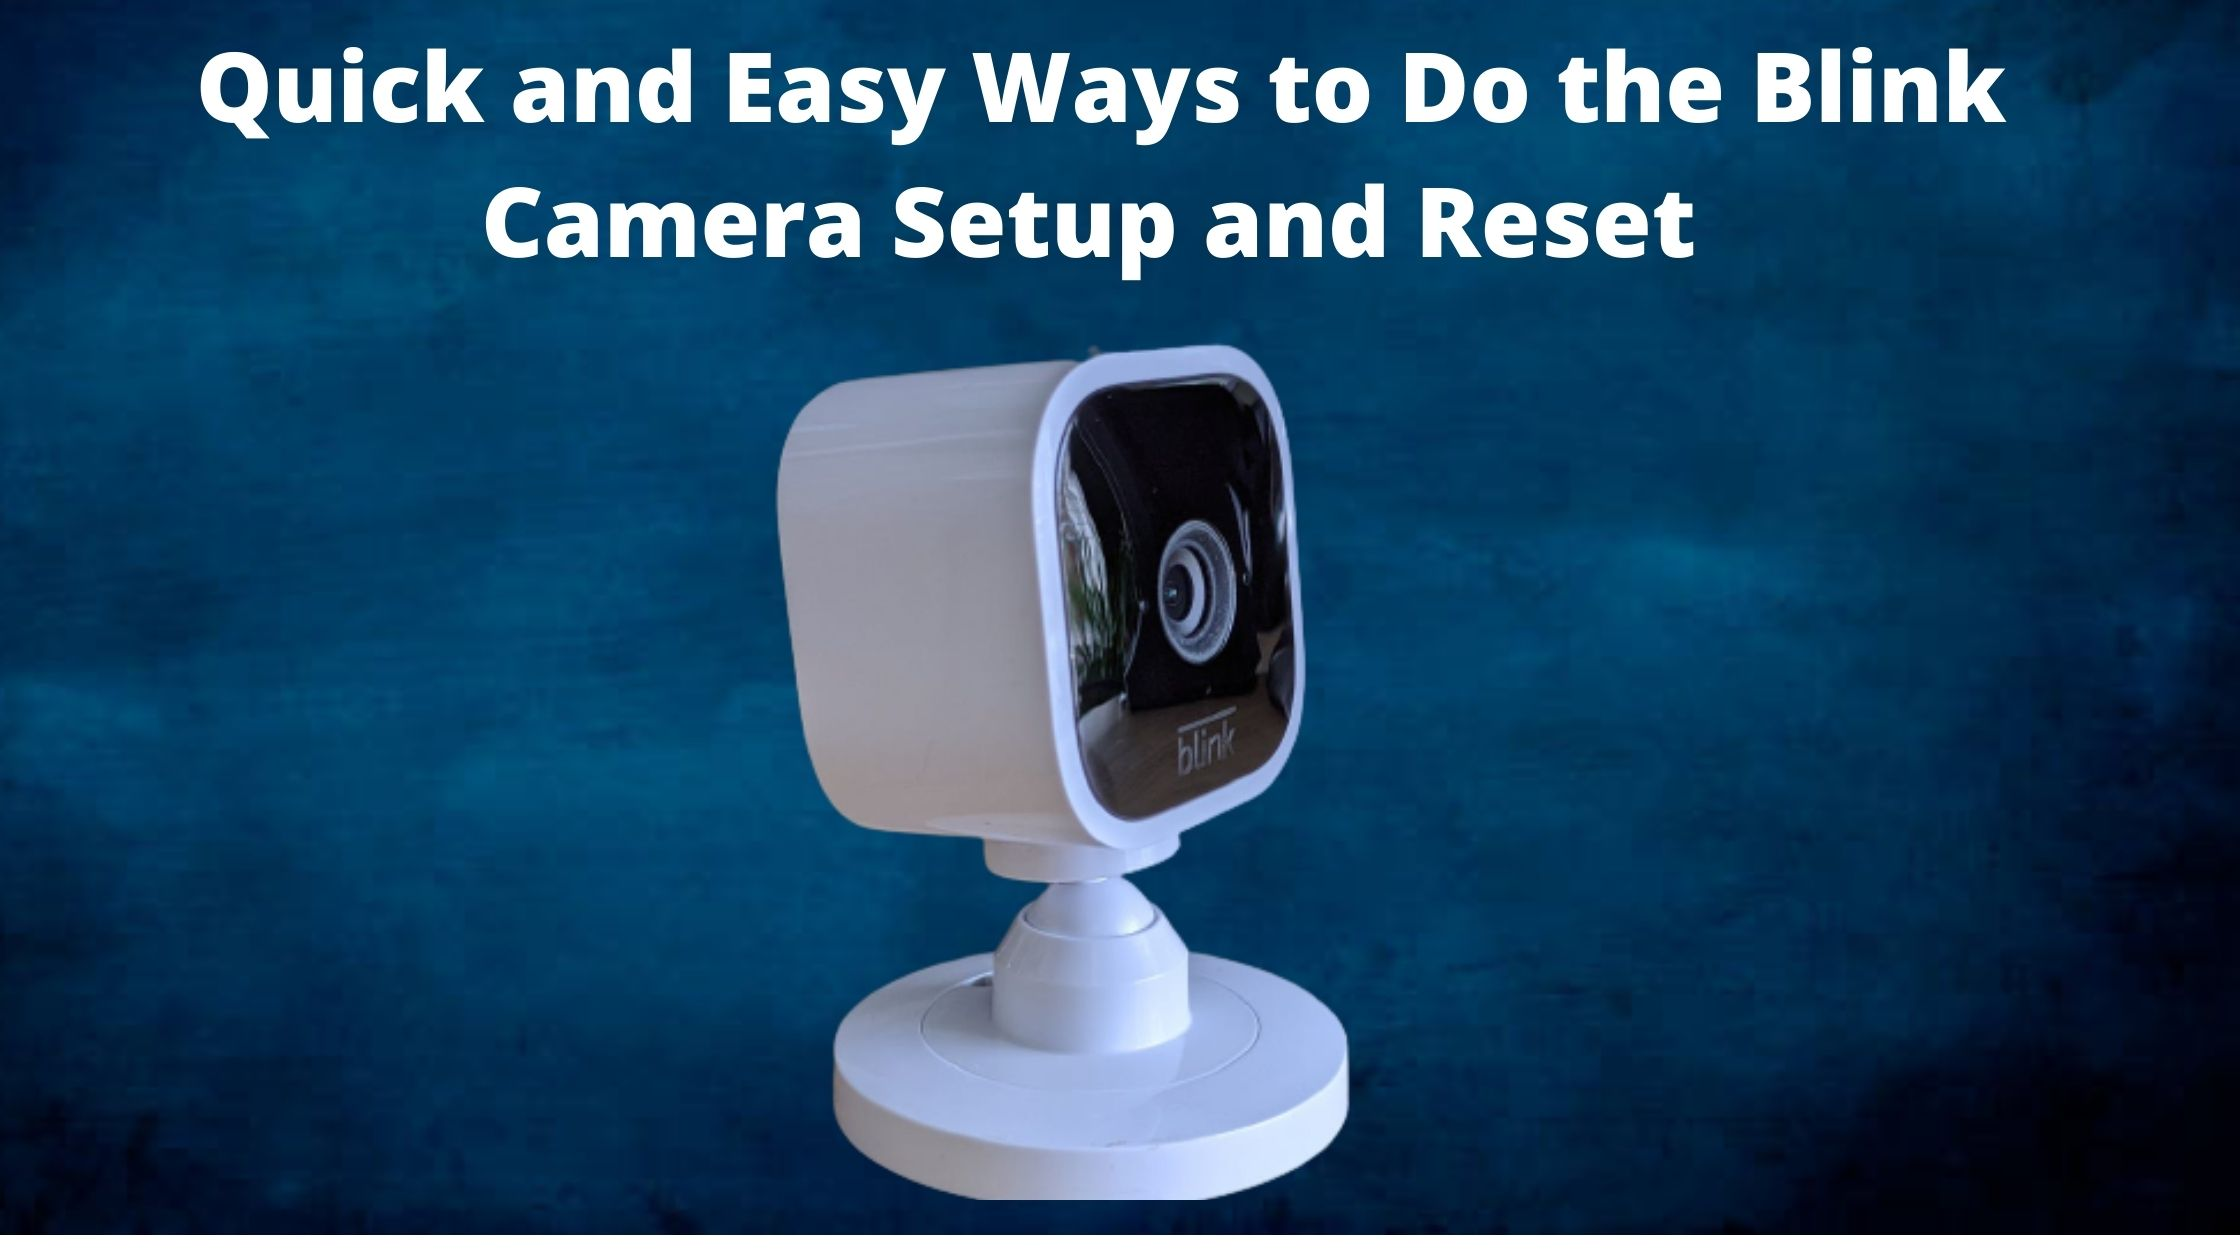 Quick and Easy Ways to do the Blink Camera Setup and Reset